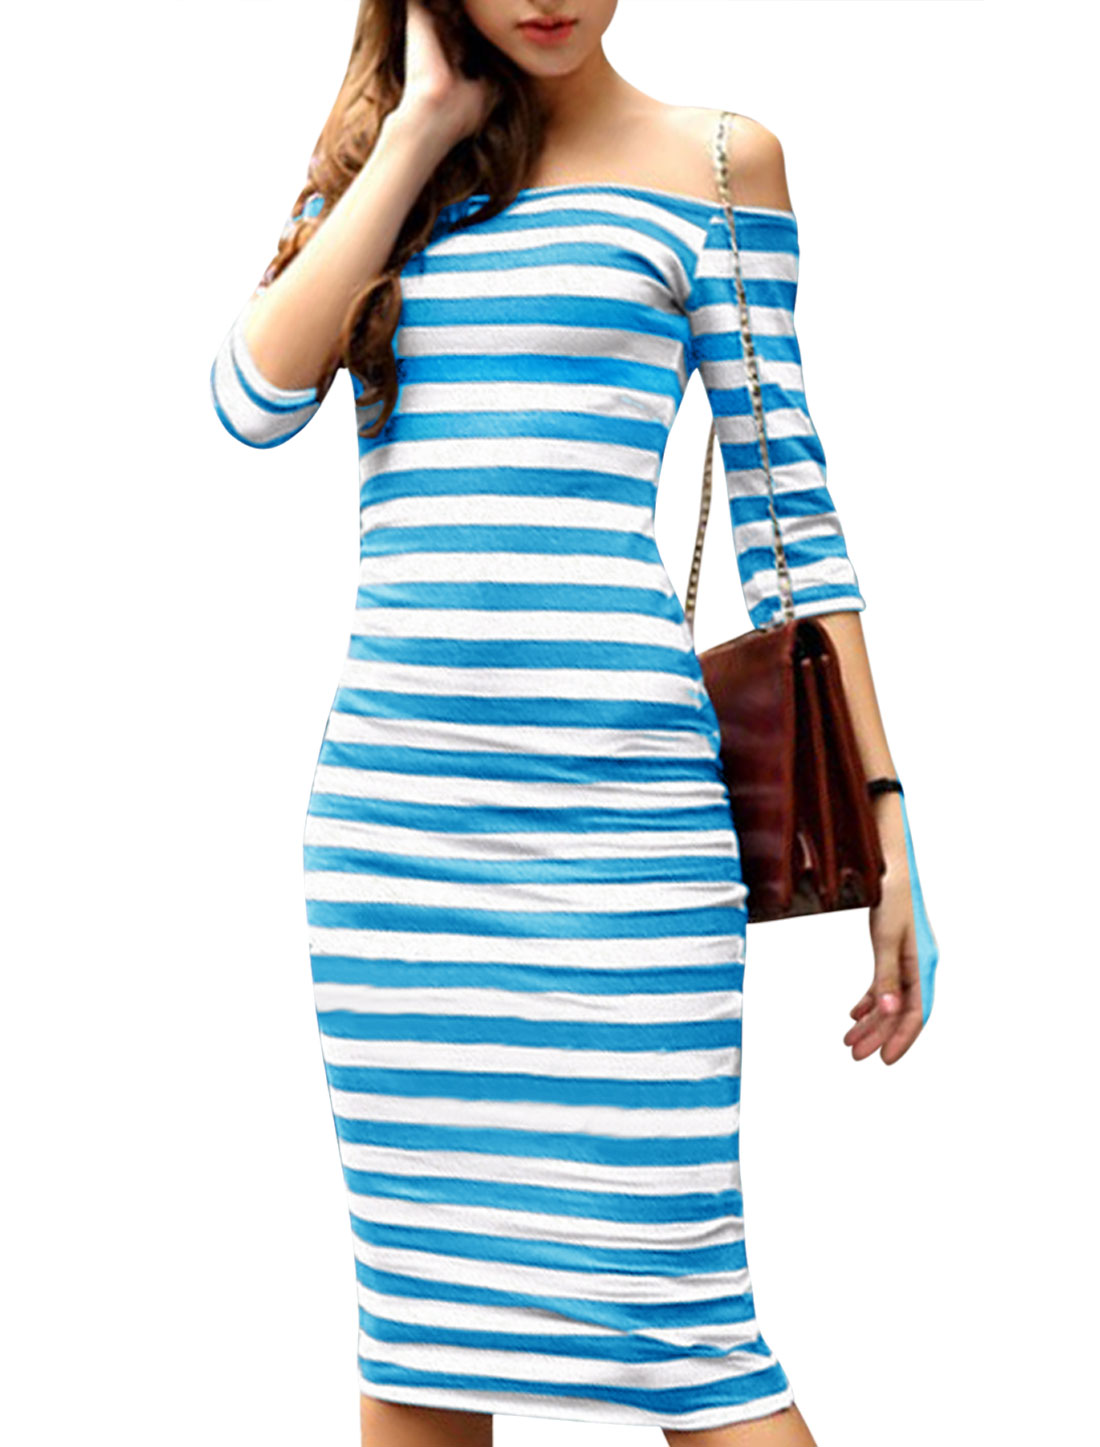 Woman Stripes Off Shoulder Slipover Bodycon Sheath Dress Light Blue White XS